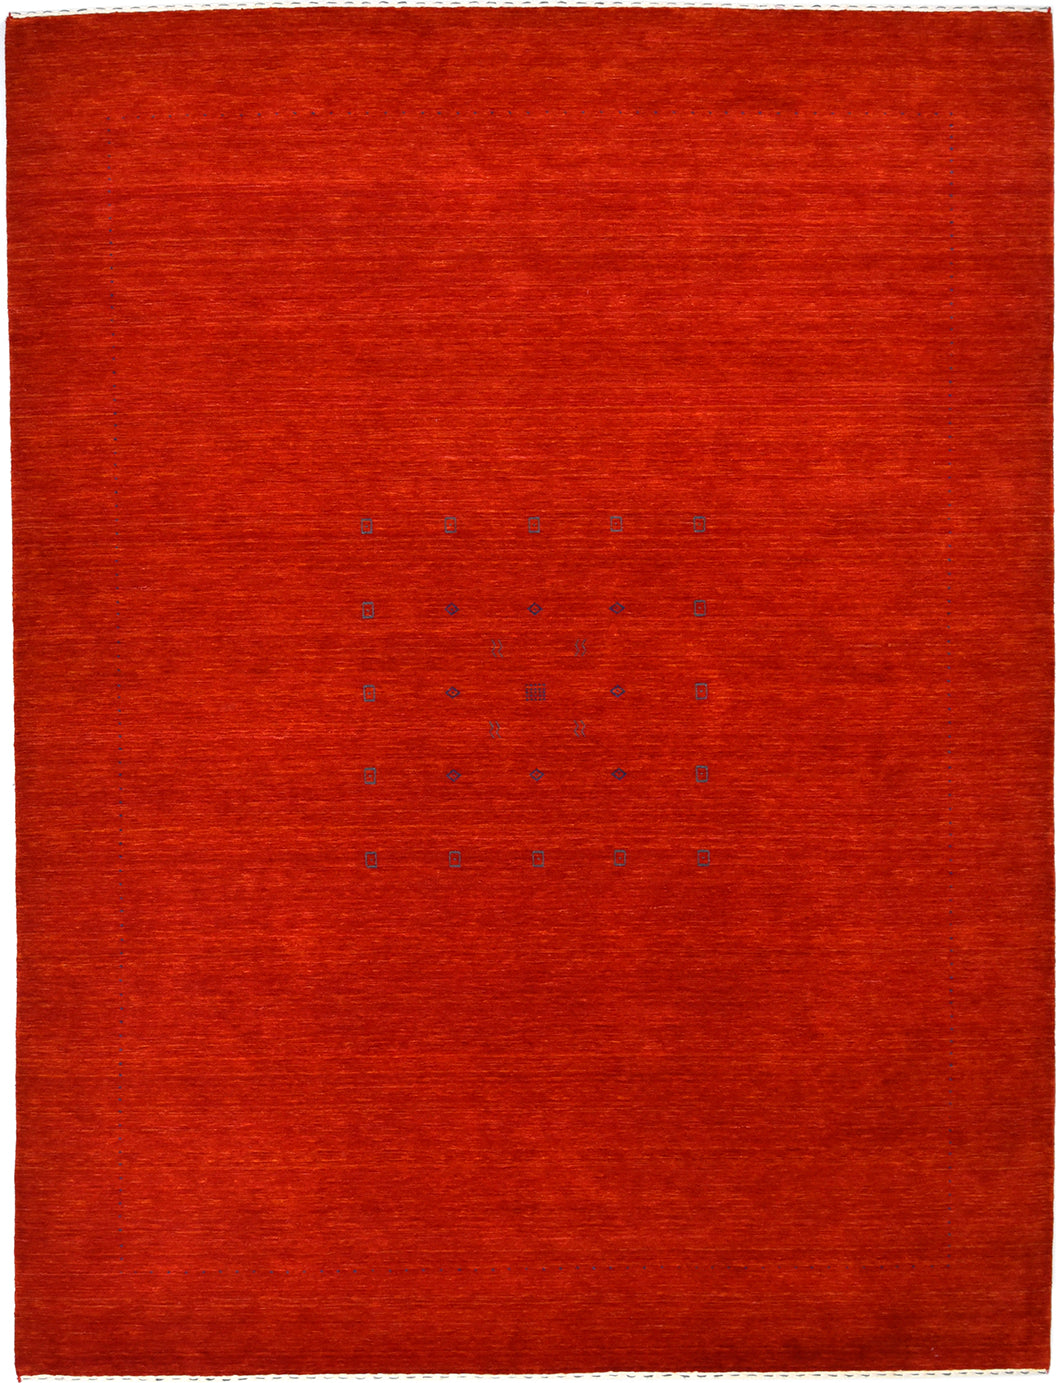 Solo Rugs Gabbeh M8049-5 Red Area Rug main image